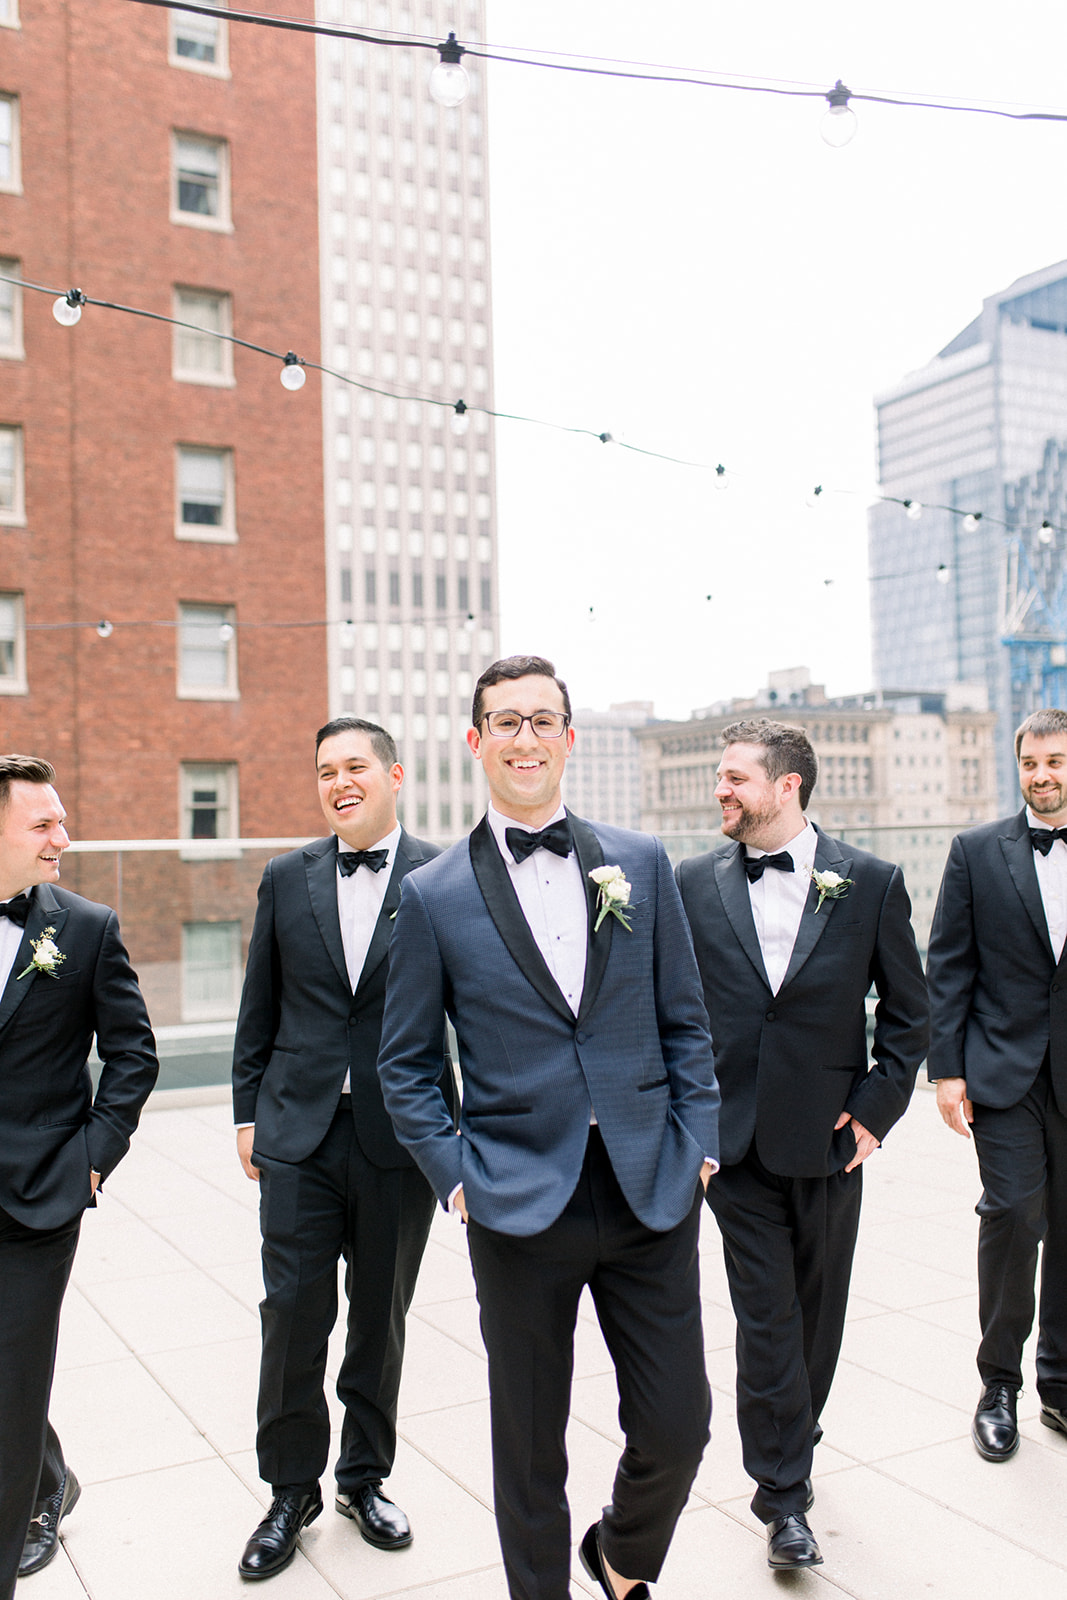 Modern groomsmen attire with black tuxedo for Pittsburgh wedding held at Hotel Monaco. See more beautiful details of this simple, yet stunning wedding at exhale-events.com!